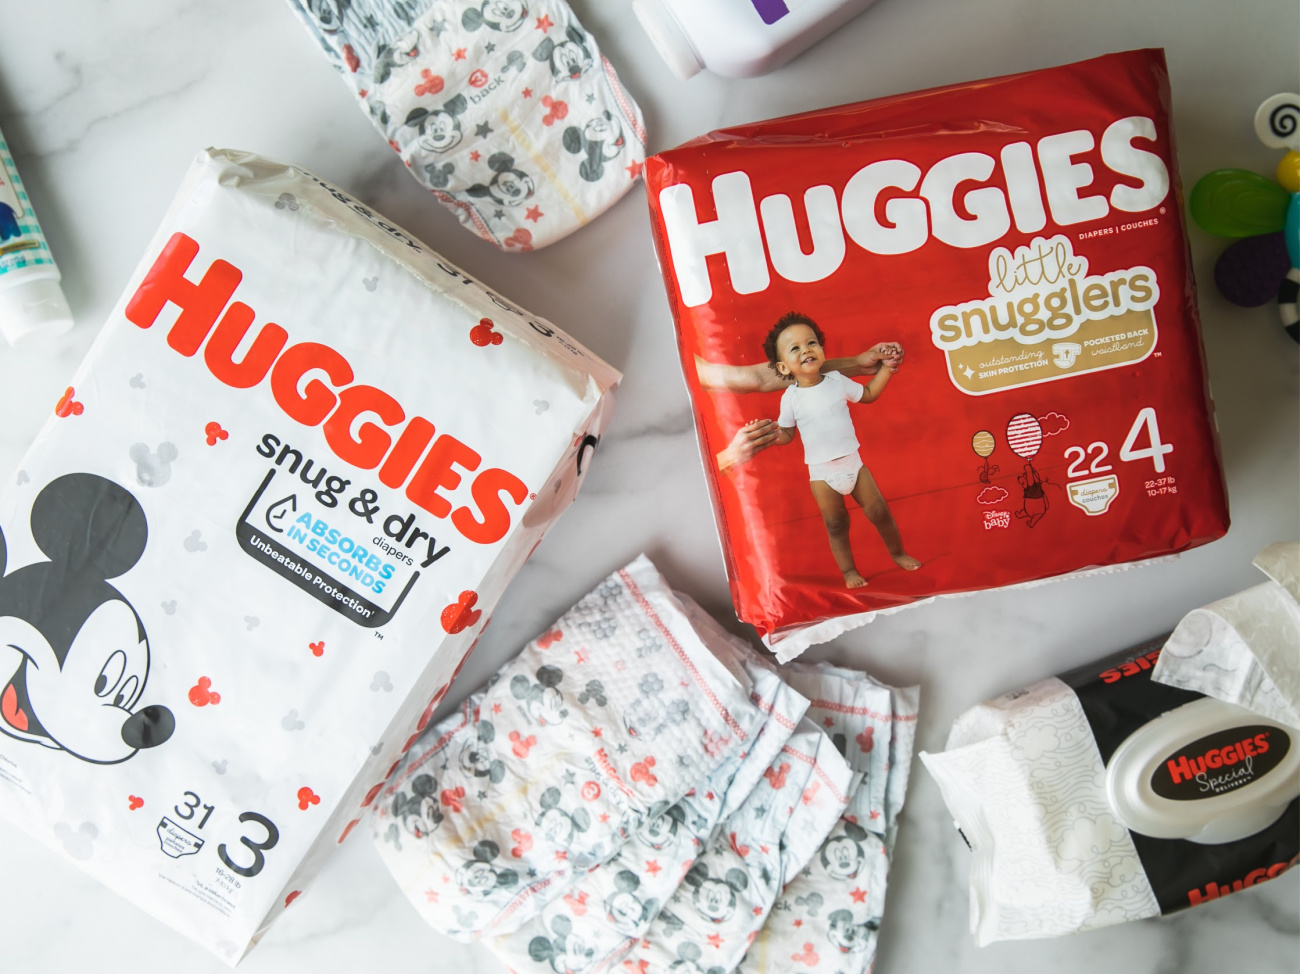 Can't-Miss Deal On Huggies Diapers And Pull-Ups This Week At Publix - Diapers As Low As $2.19! on I Heart Publix